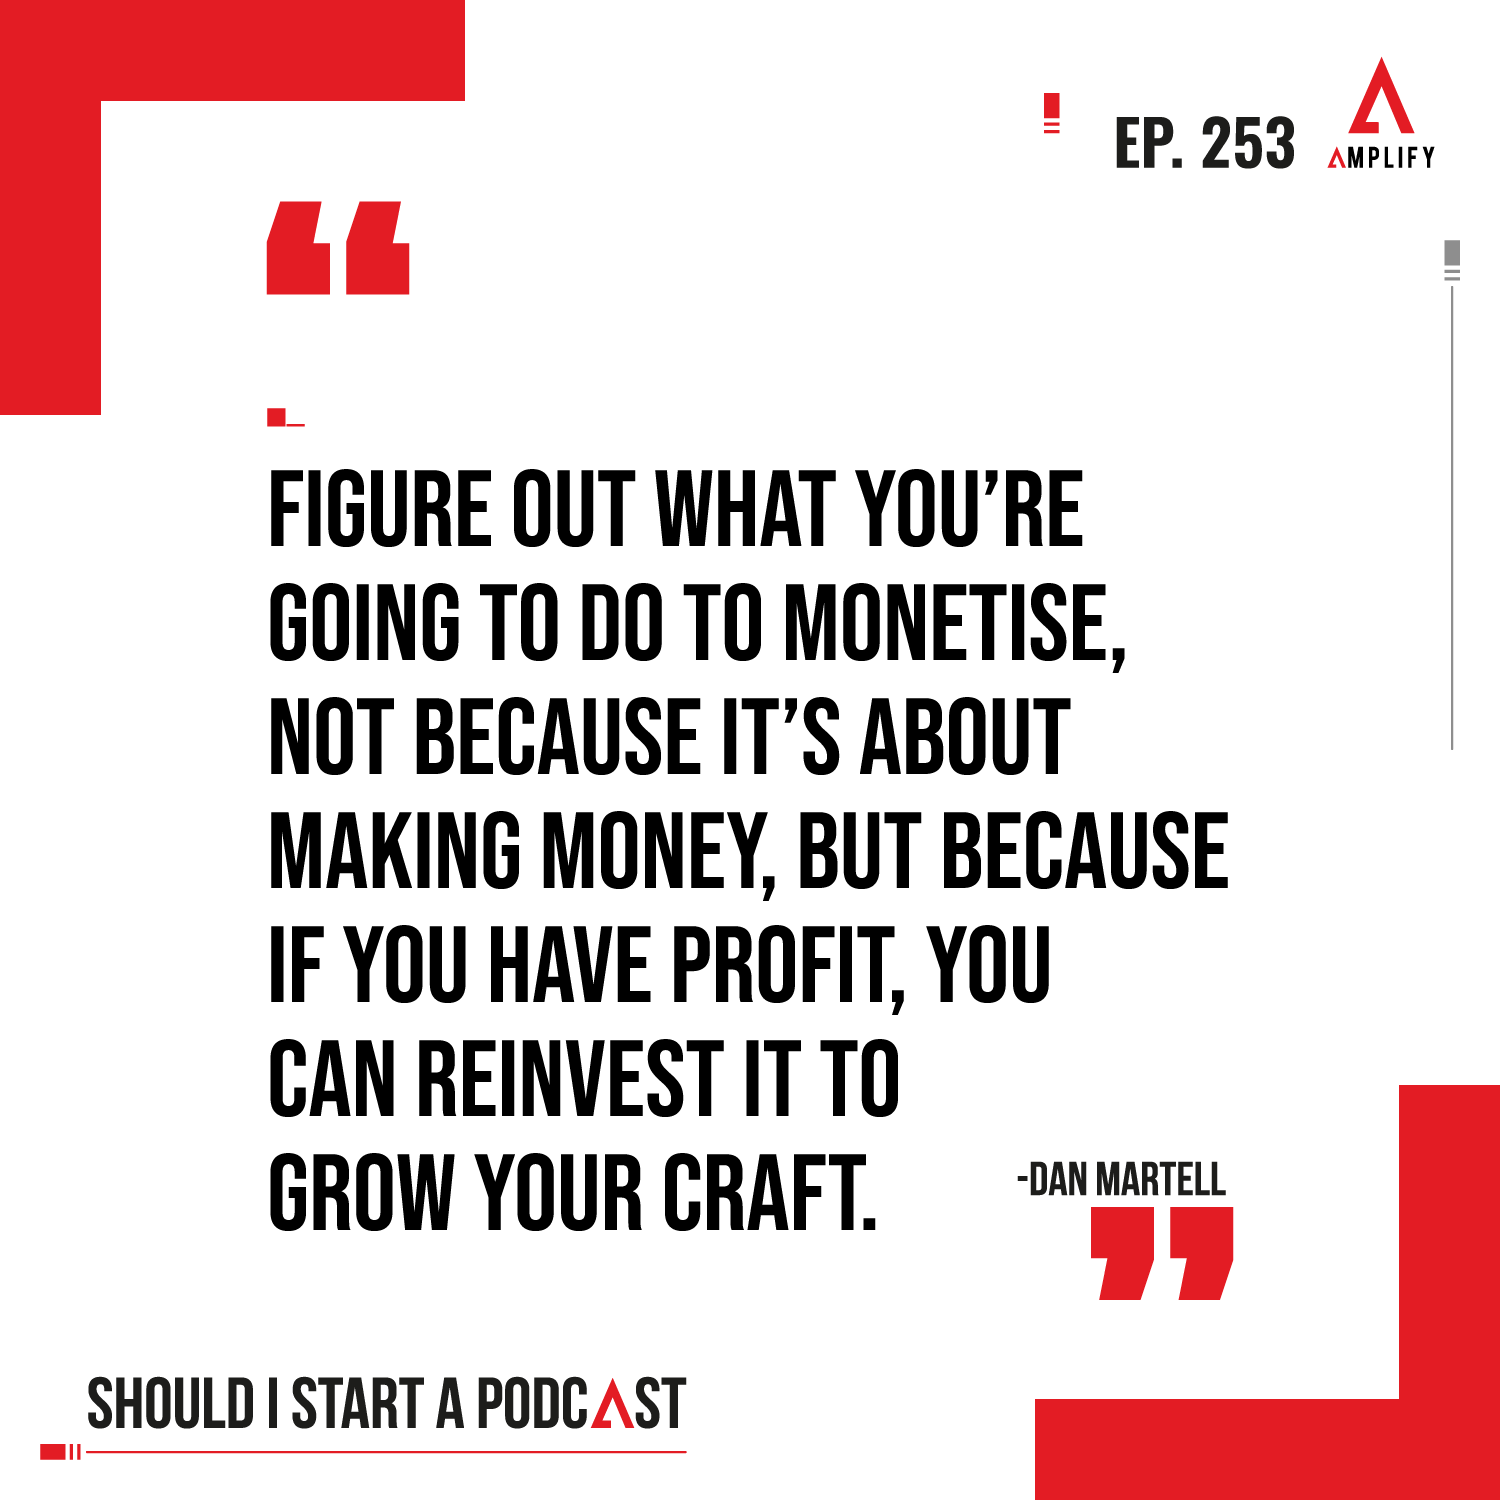 """decorative image with the quote """"Figure out what you're going to do to monetise, not because it's about making money, but because if you have profit, you can reinvest it to grow your craft."""""""